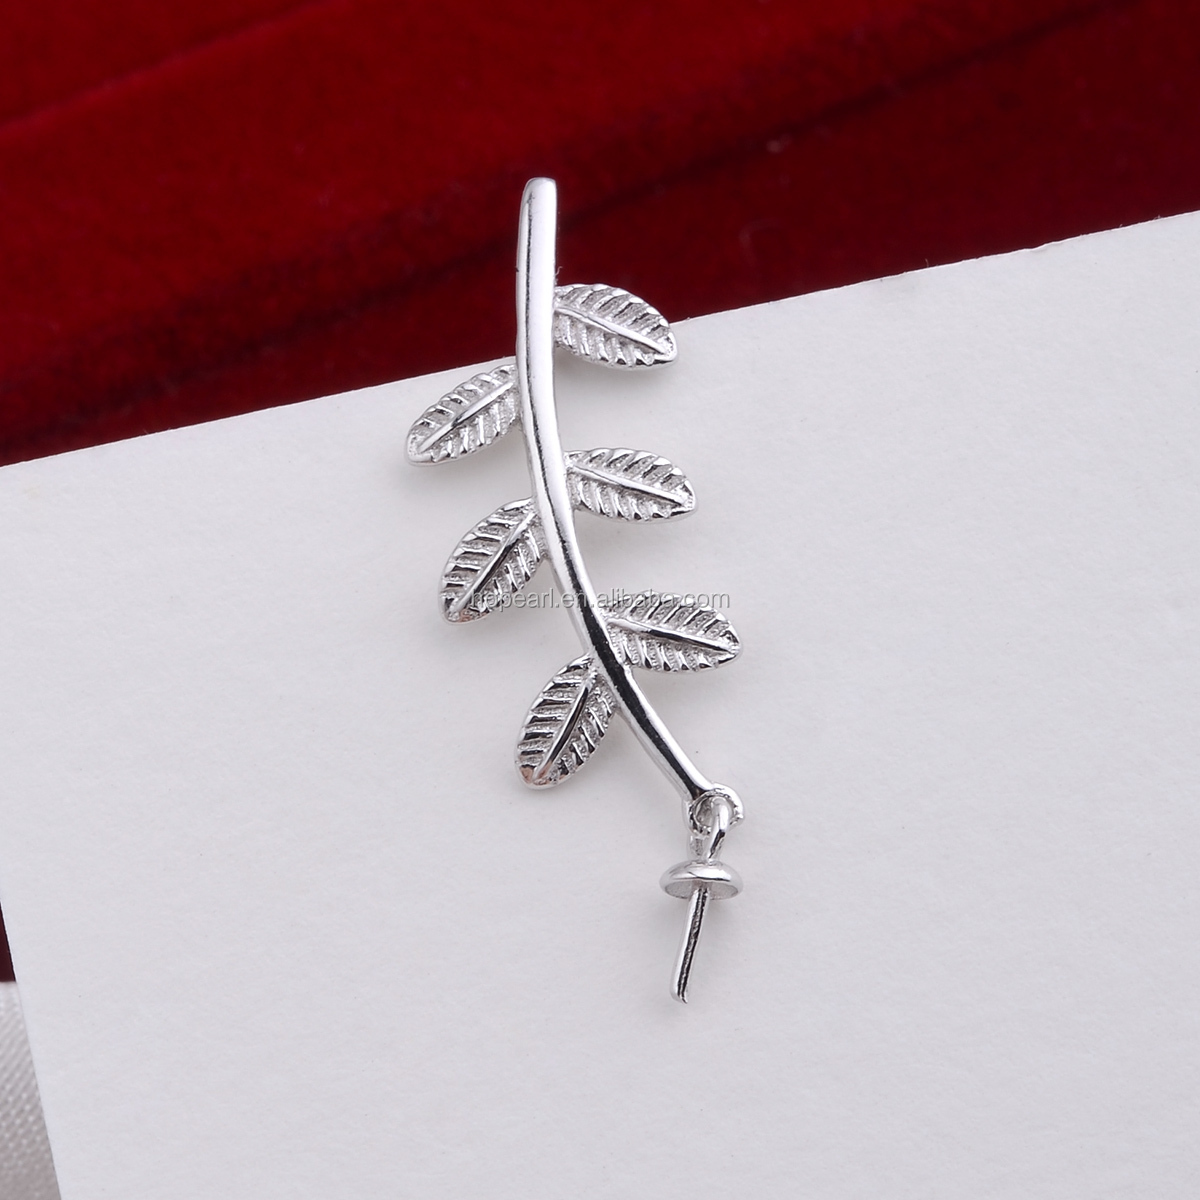 SSP241 Little Leaves Pendant Pearl Jewelry Mounting 925 Sterling Silver Charms Findings for Drop Pearl